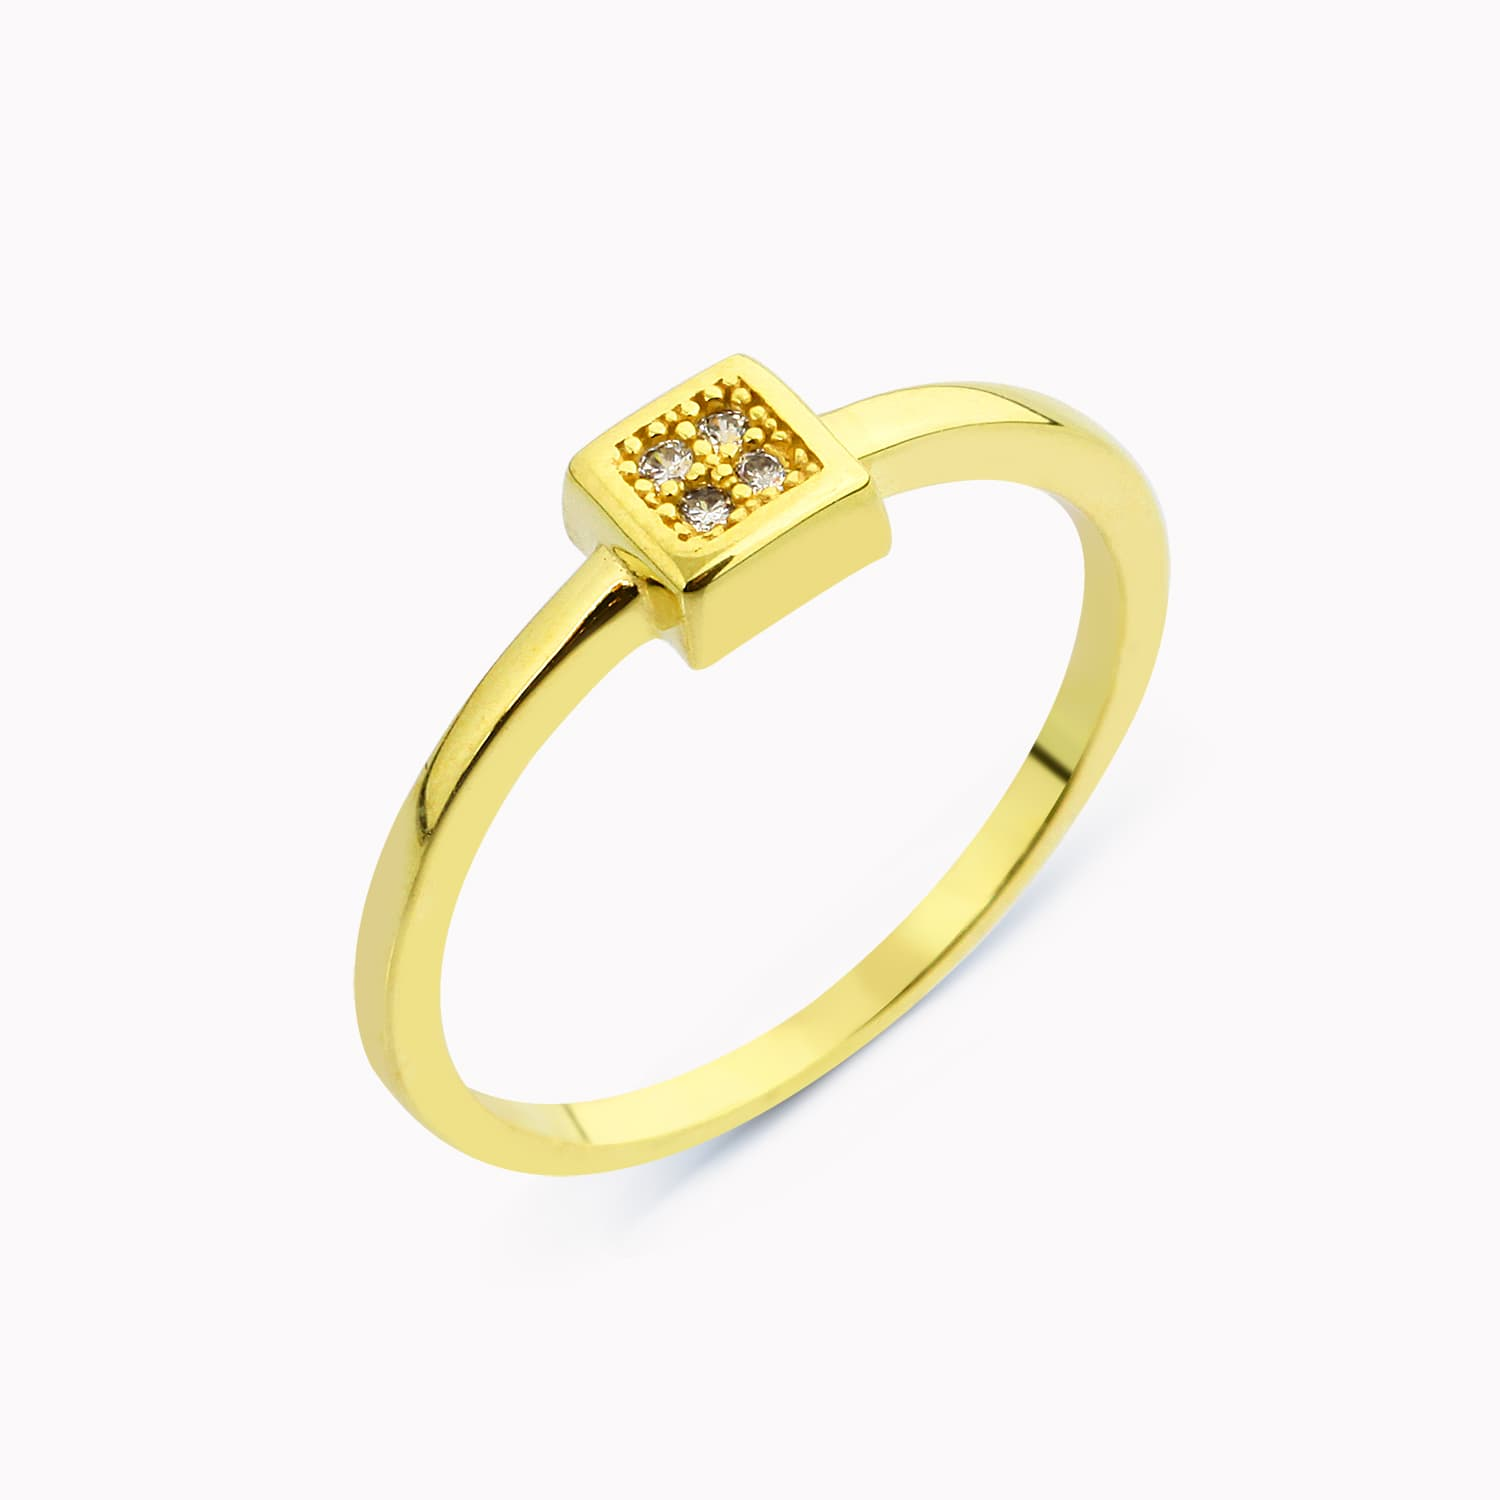 Silver gold plated thin ring models